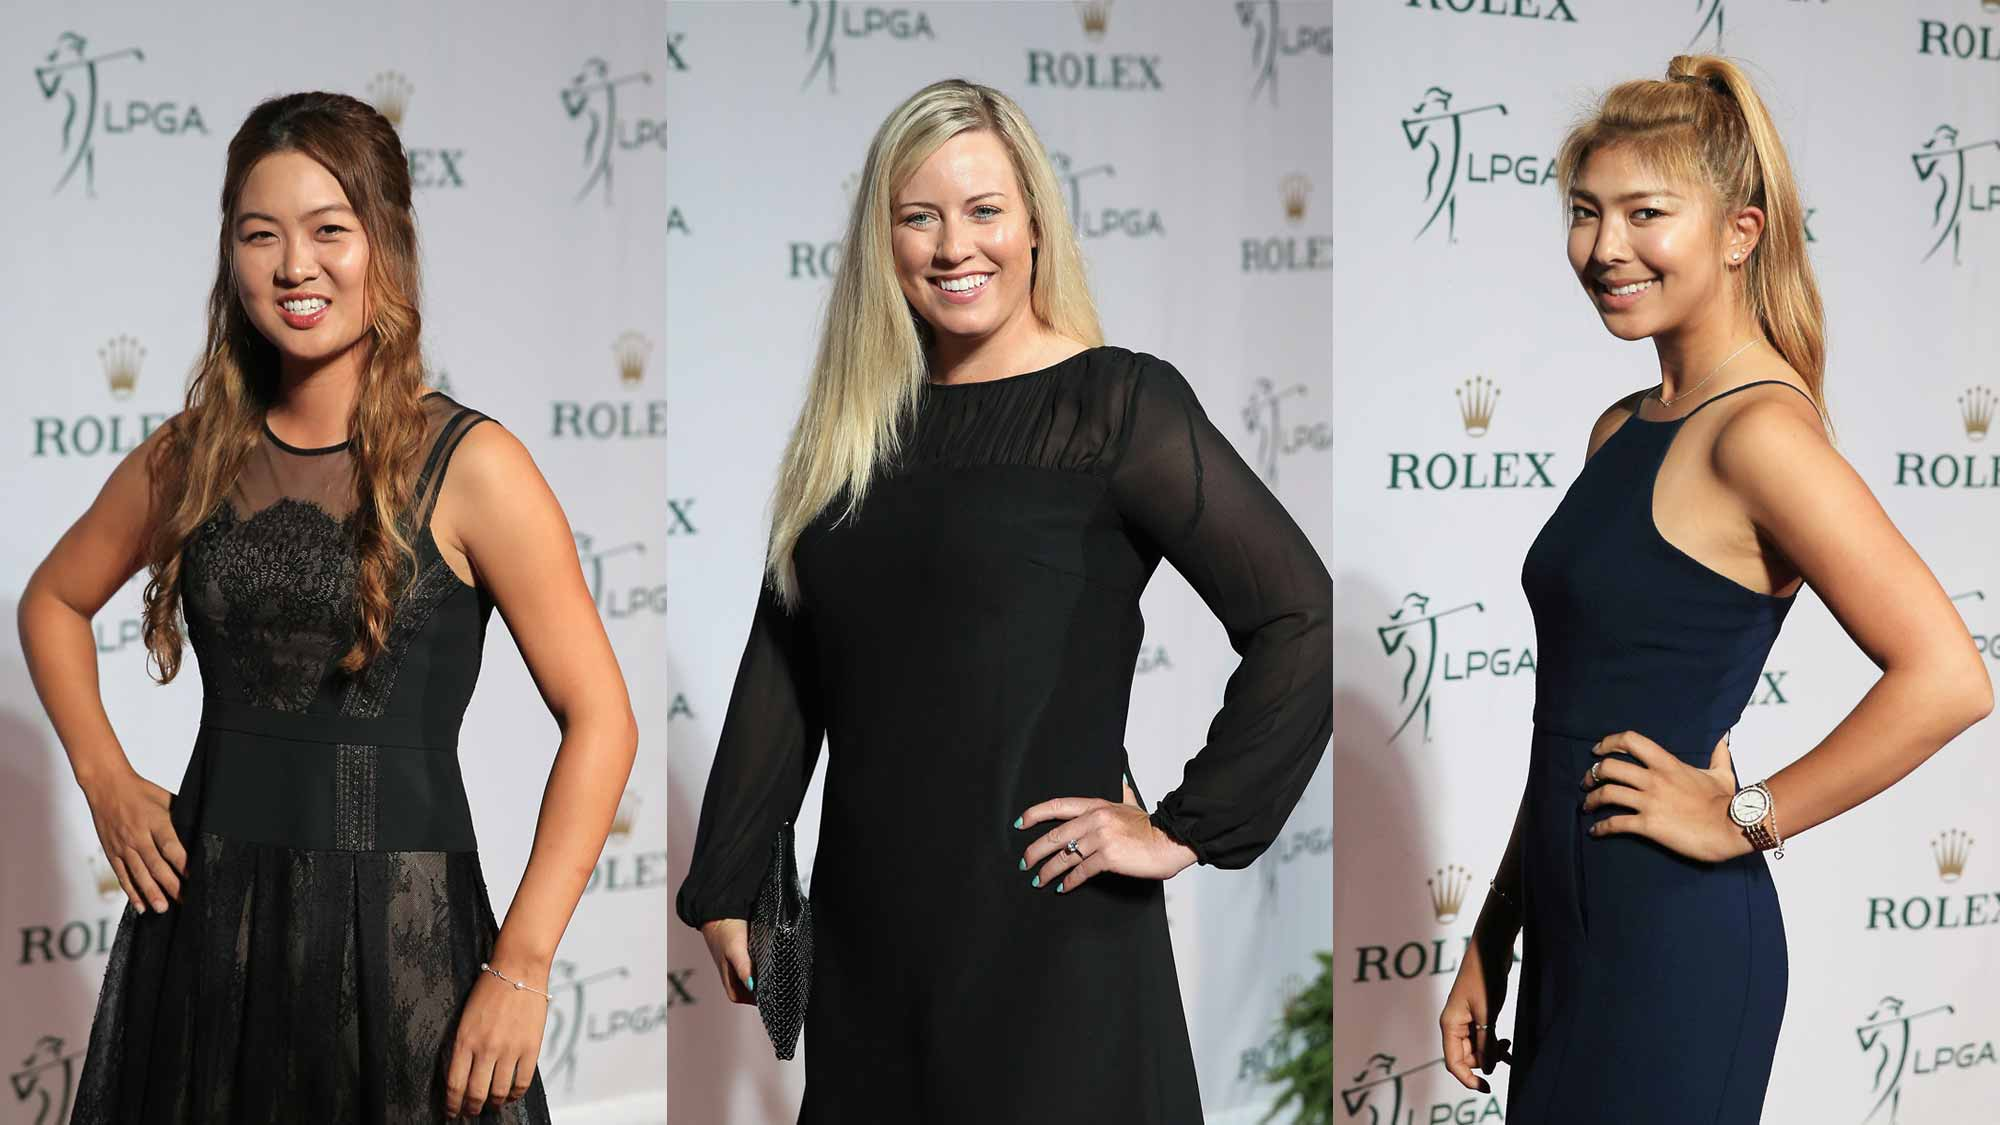 2015 LPGA Honors Players At Rolex Awards Celebration ...